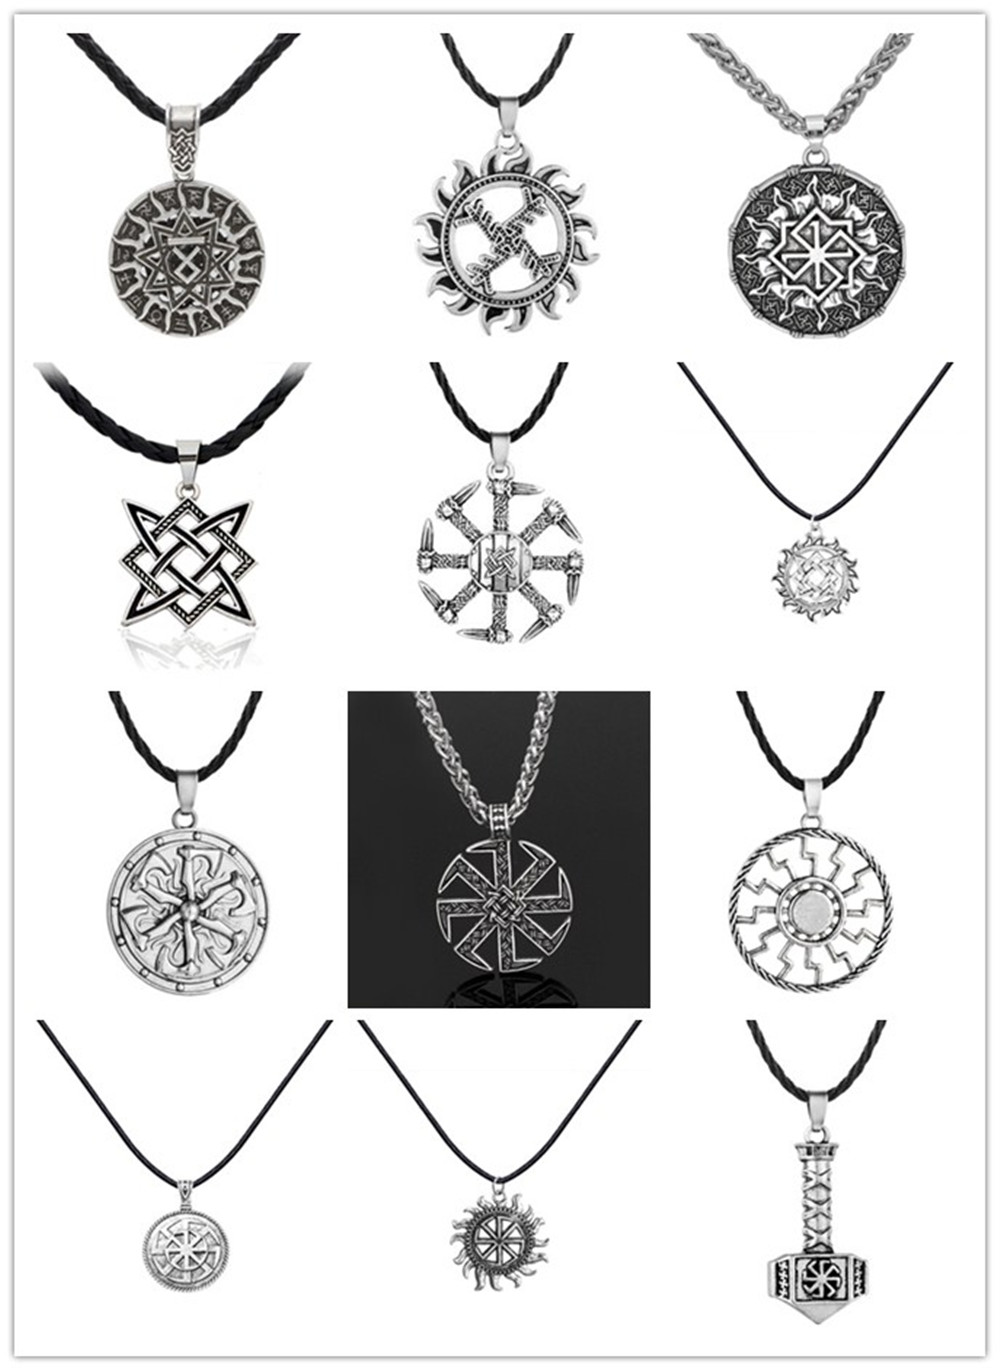 Slavic Kolovrat Wheel Amulet Pagan Pendant Necklace Viking Runes Star Of Russia Pentagram Nordic Wicca Charm Necklaces Collier